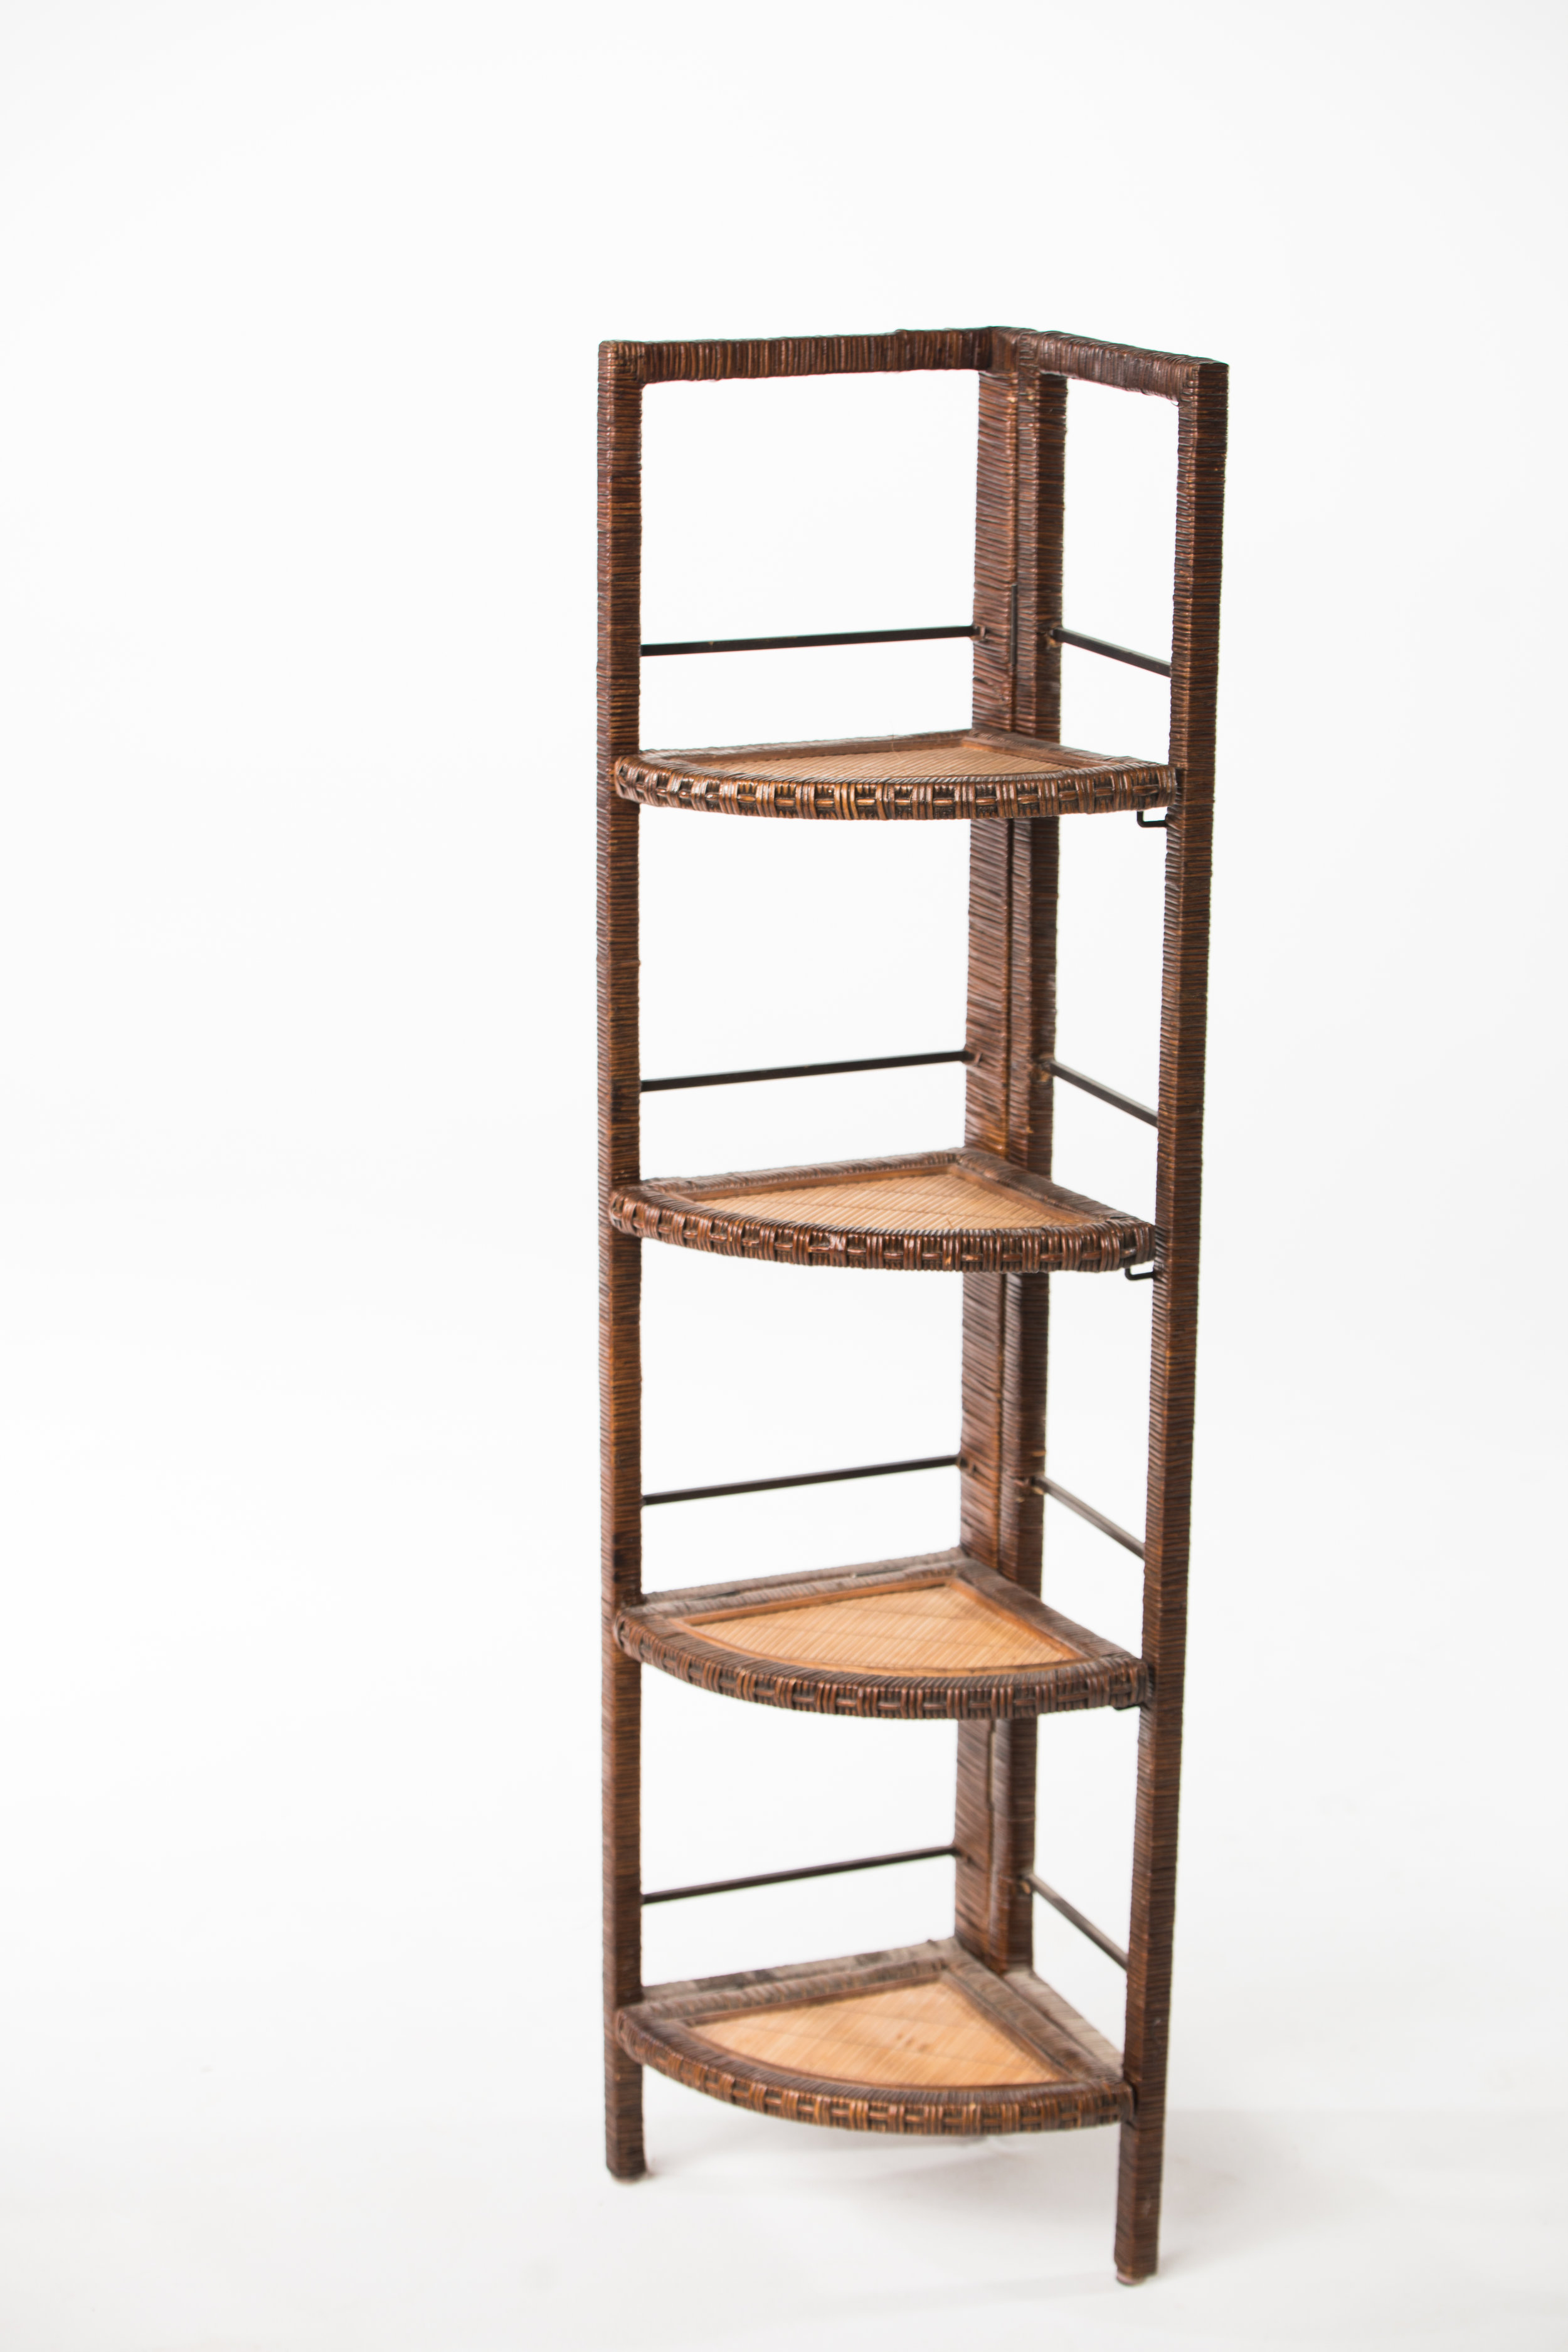 WICKER CORNER SHELVING